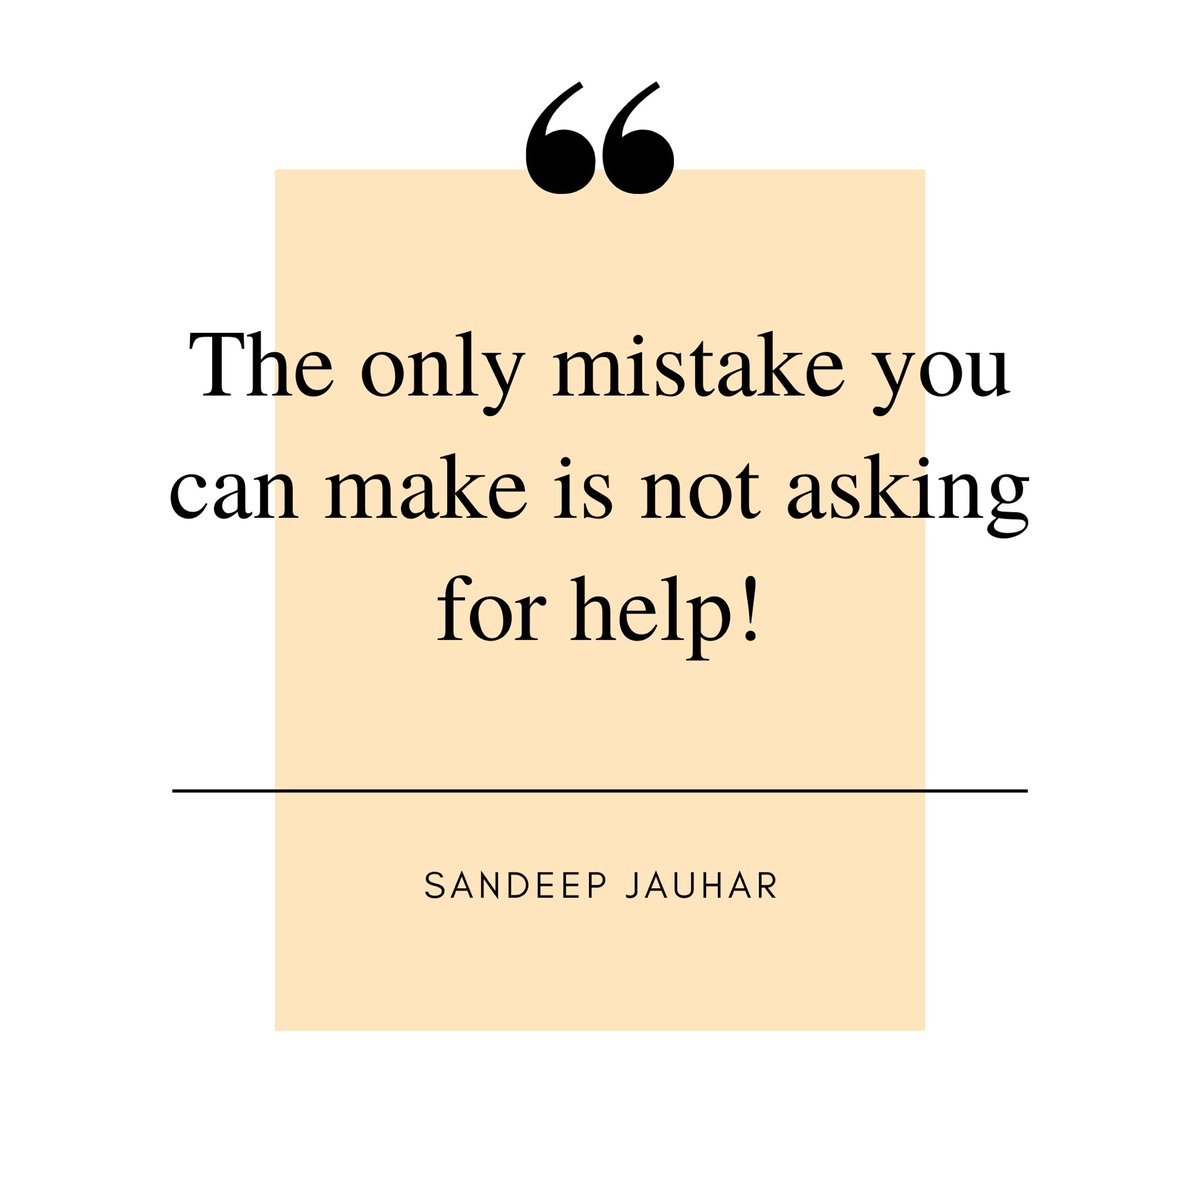 Trying to act like a superhuman and pushing yourself to the limits while you can simply get help by asking.. How often do you make this mistake? . . . . #shareduties #askforhelp #collaboration #helpinghand #strongertogether #itsok #findpeace #quoteoftheday #sandeepjauhar https://t.co/bIethWt8Lo